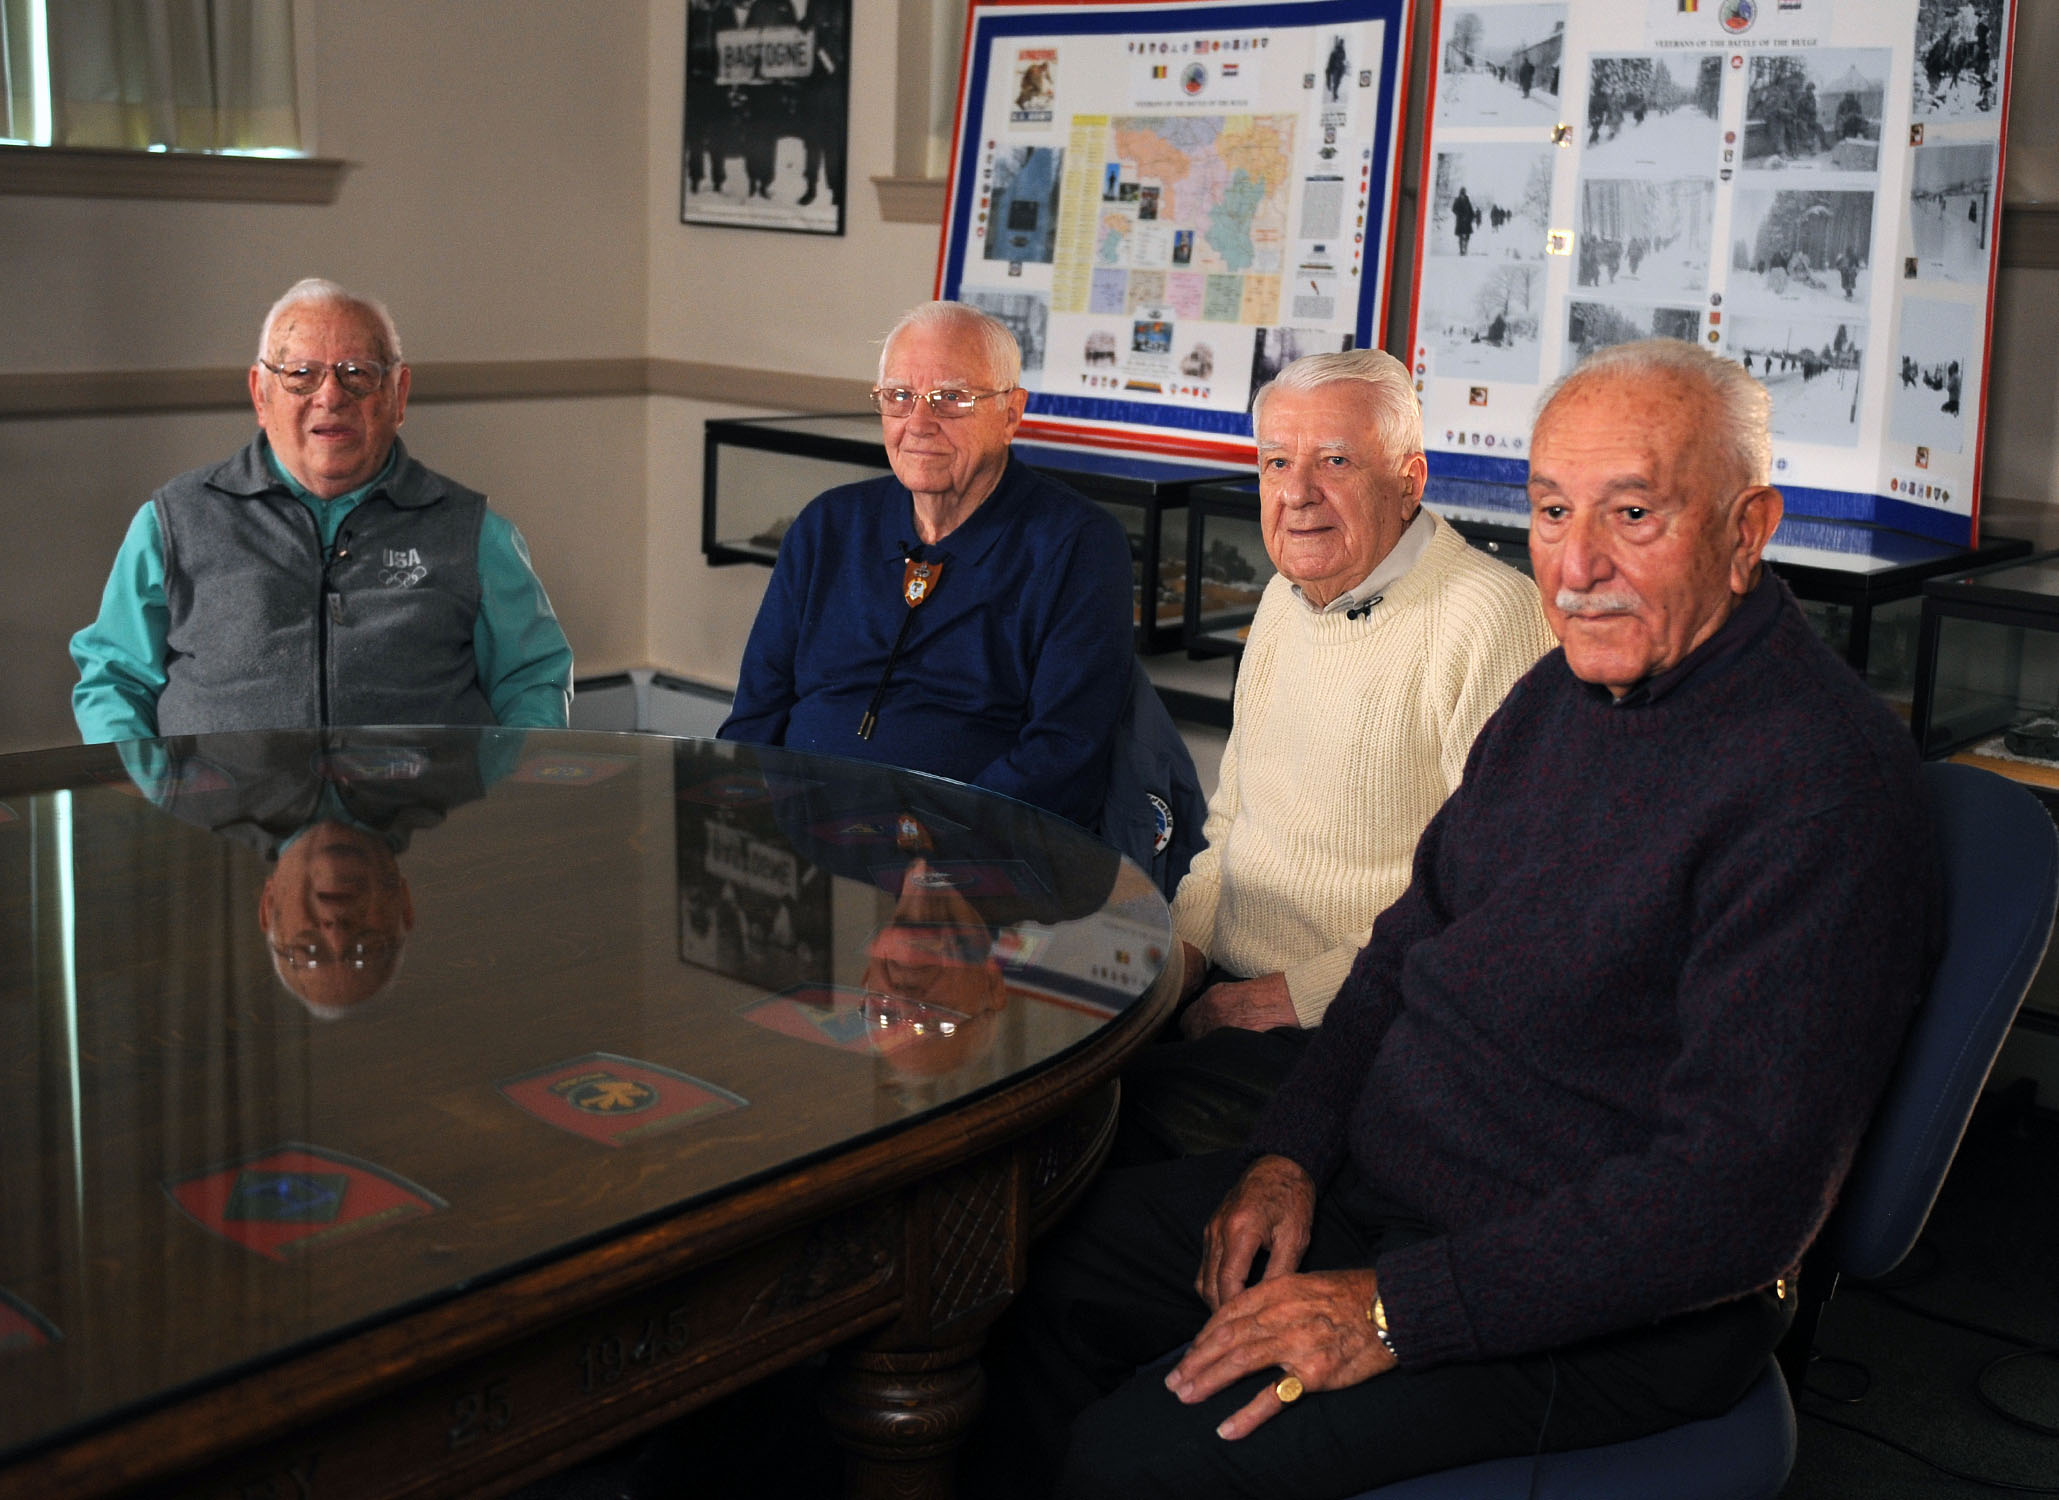 VAntage Point recently sat down with Battle of the Bulge Veterans Mike Levin, Douglas Dillard, John Schaffner and Al Shebab. Tomorrow, VAntage Point will post a portion of that conversation and video in remembrance of the epic battle that began 70 years ago.